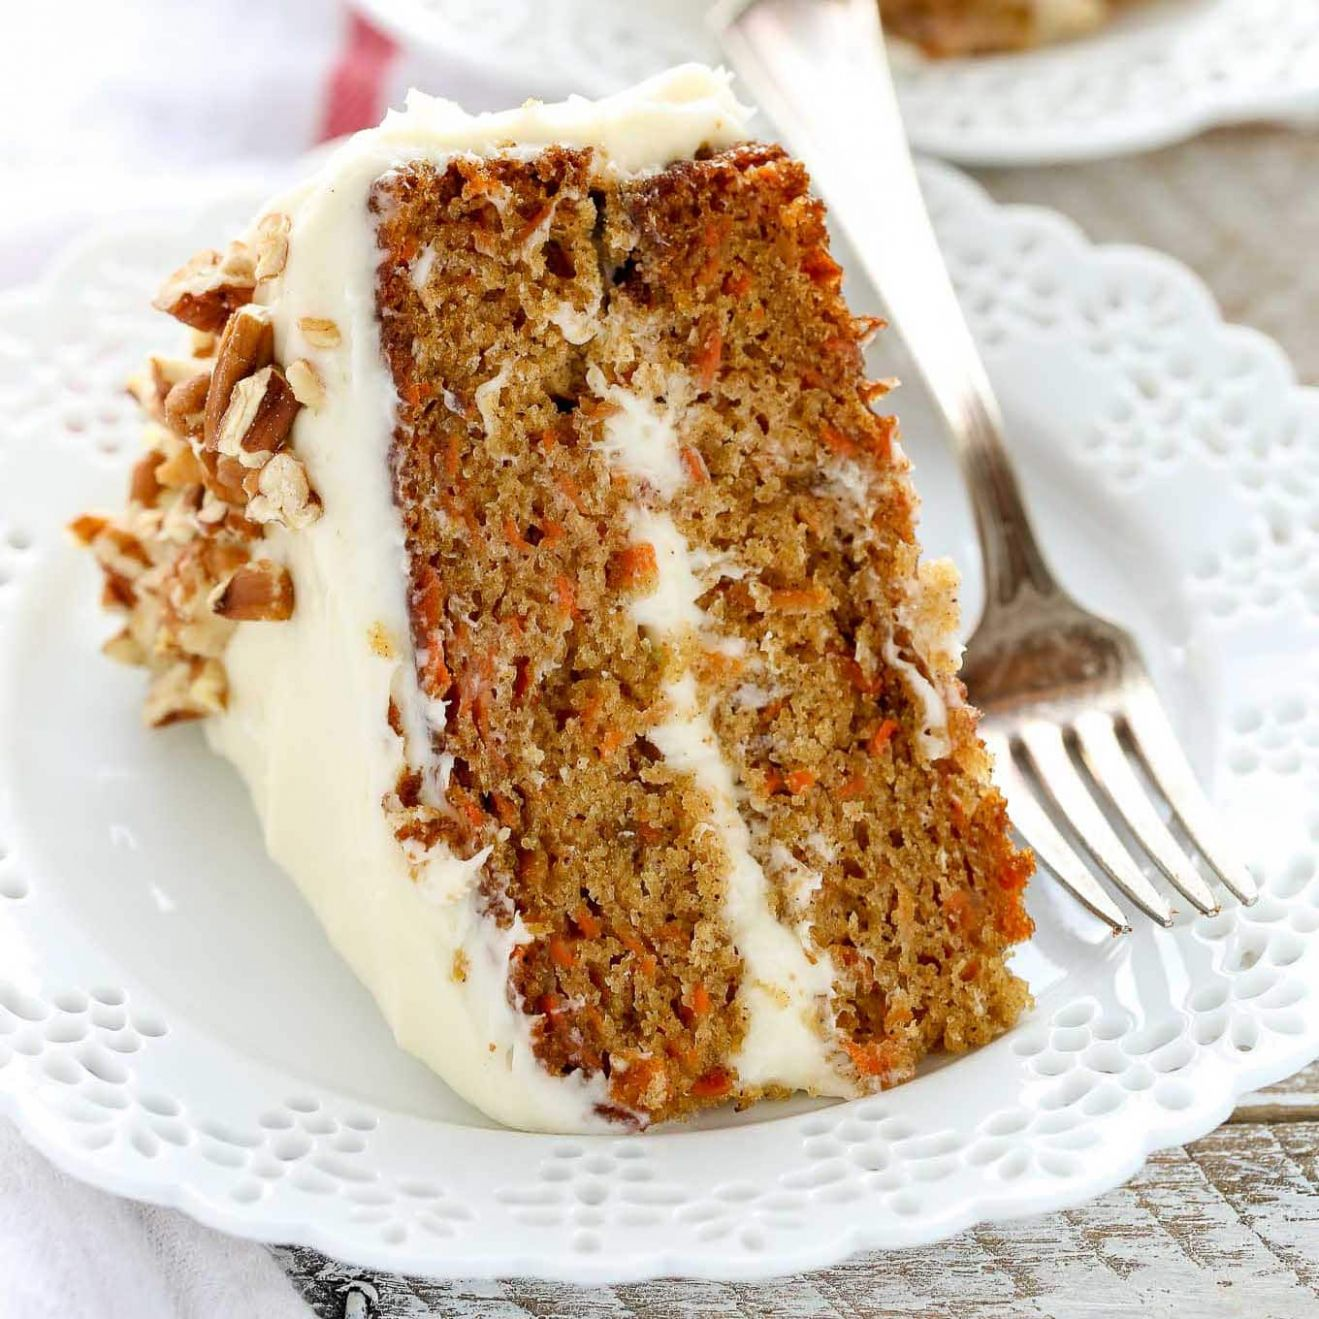 The BEST Carrot Cake with Cream Cheese Frosting - Recipes Carrot Cake